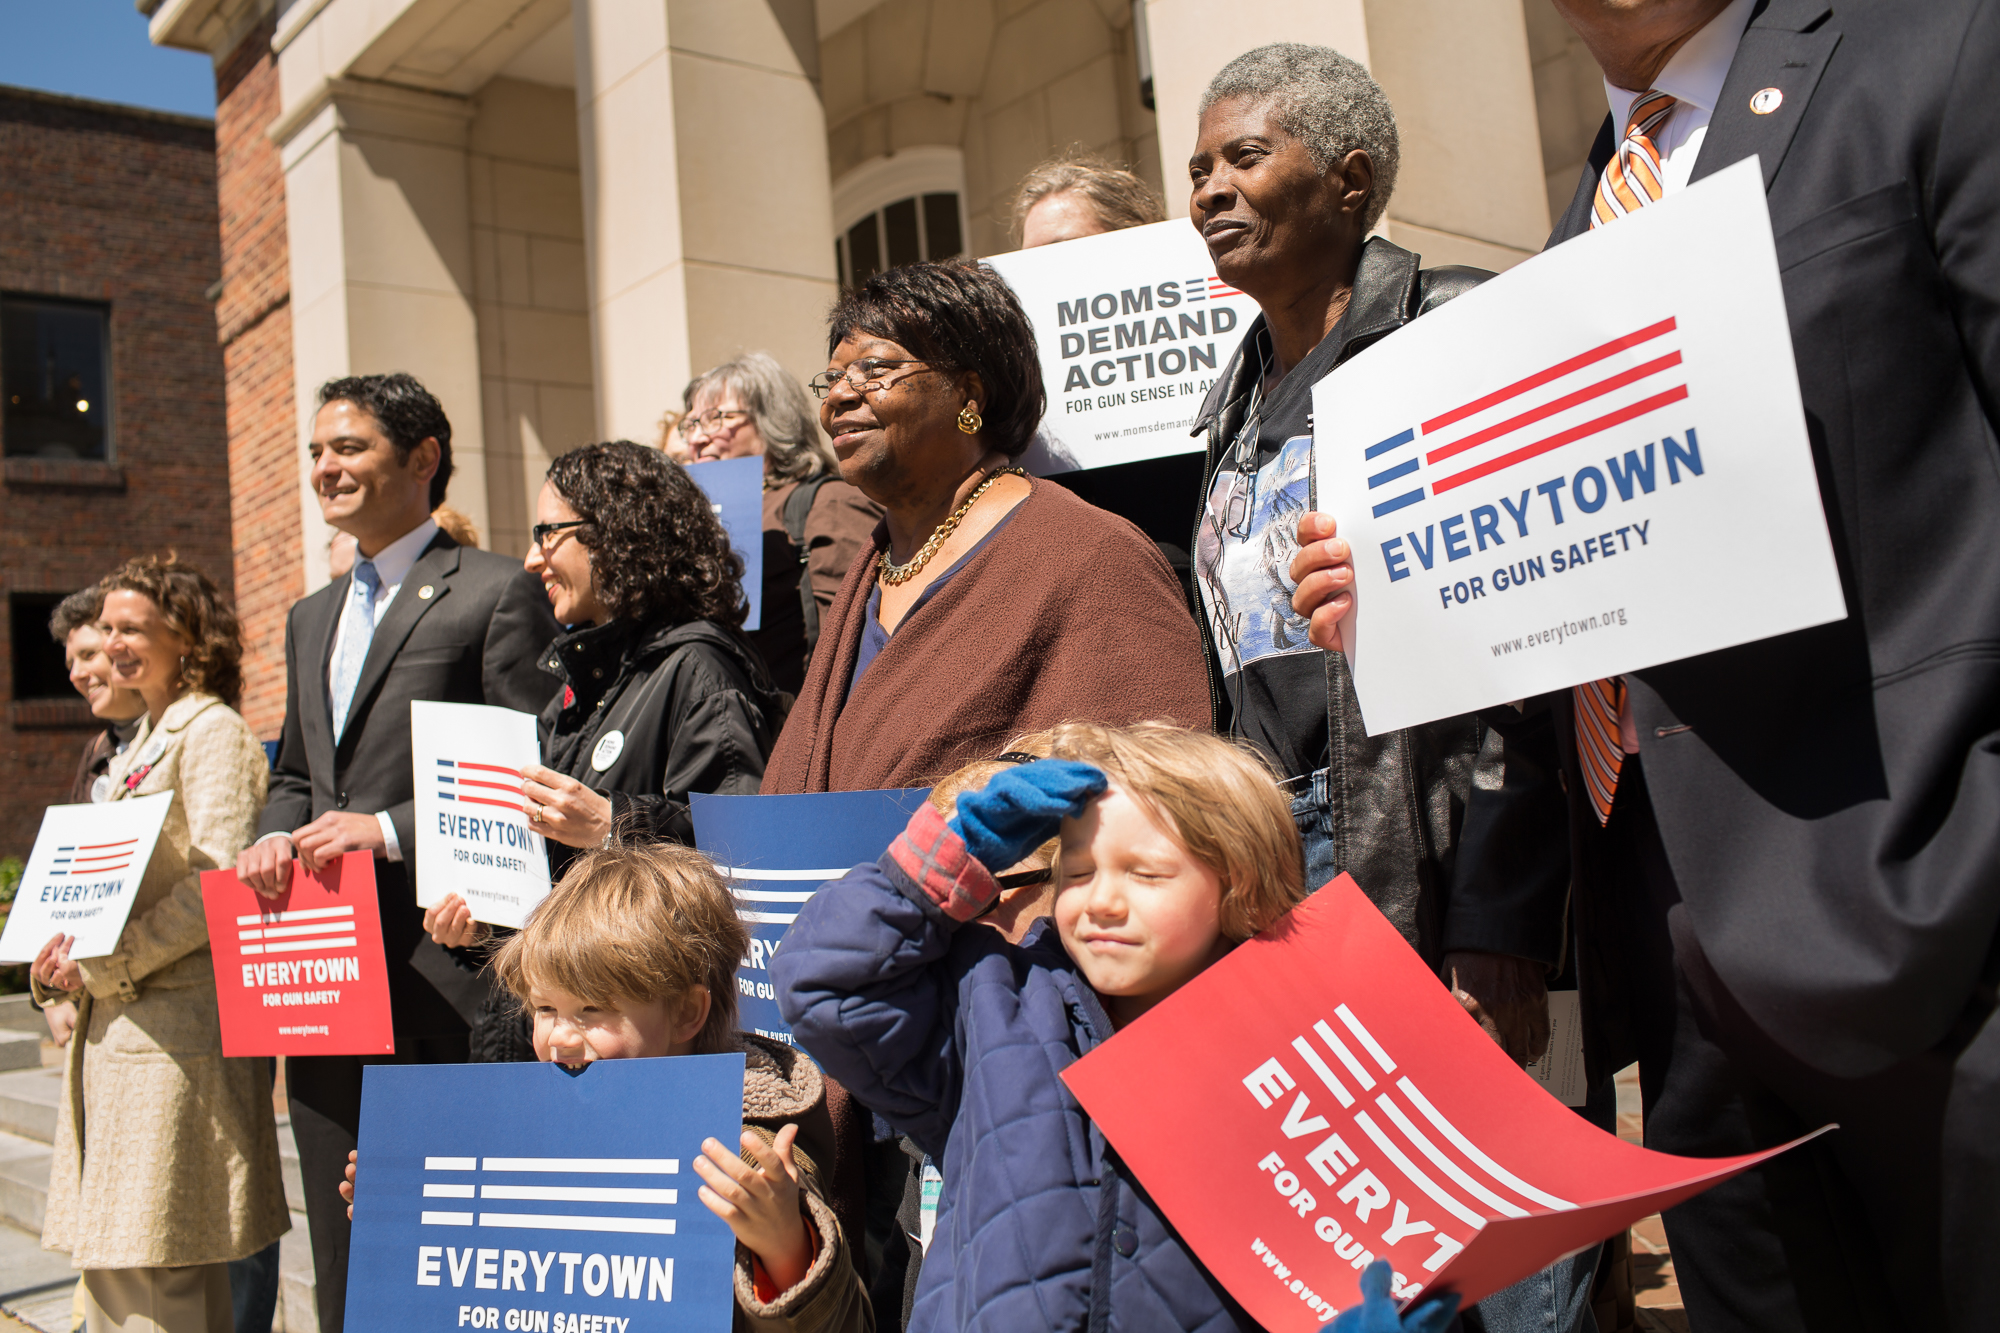 Joslin Simms poses with politicians and gun-control advocates after speaking at a Mayors Against Illegal Guns rally in Chapel Hill in 2014. Increasingly isolated by depression and grief, Joslin found companionship and community in organizations like Moms Demand Action for Gun Sense. She and other mothers who have lost their children to violence don't want them to have died in vain, so they have organized with the hope of influencing national and local gun, education and anti-poverty policies.